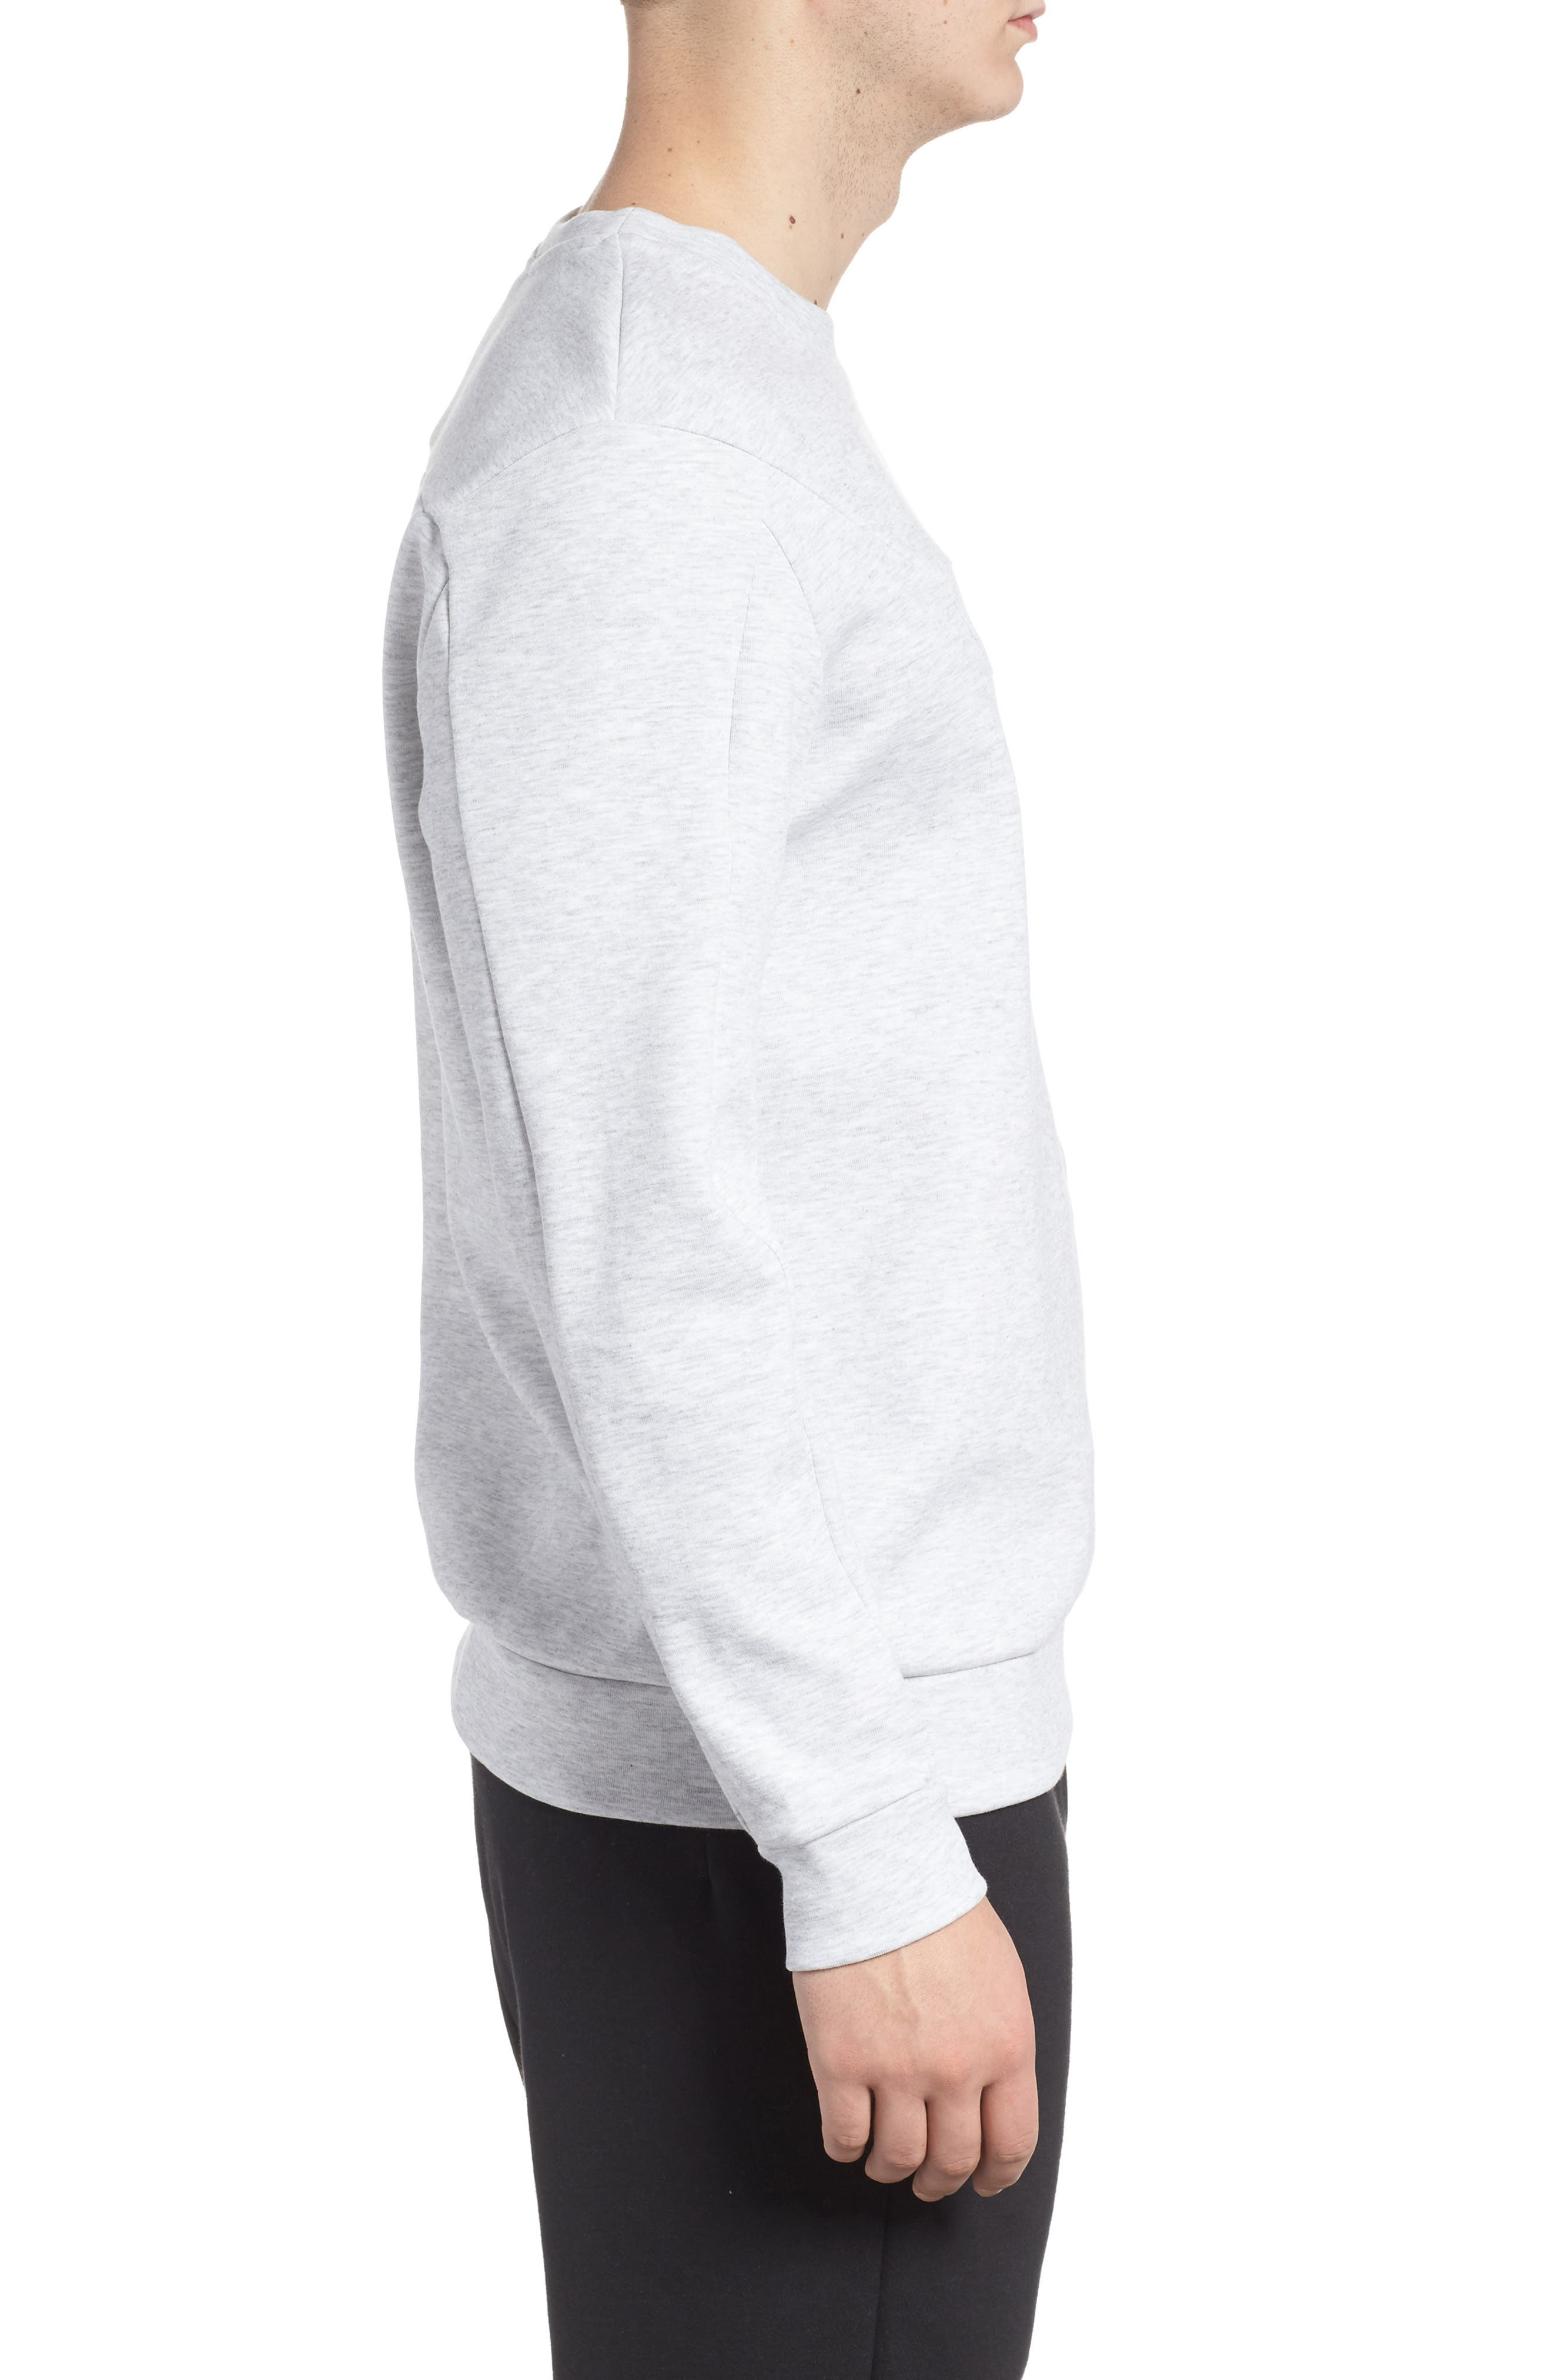 Double Sweatshirt,                             Alternate thumbnail 3, color,                             Light Grey Heather